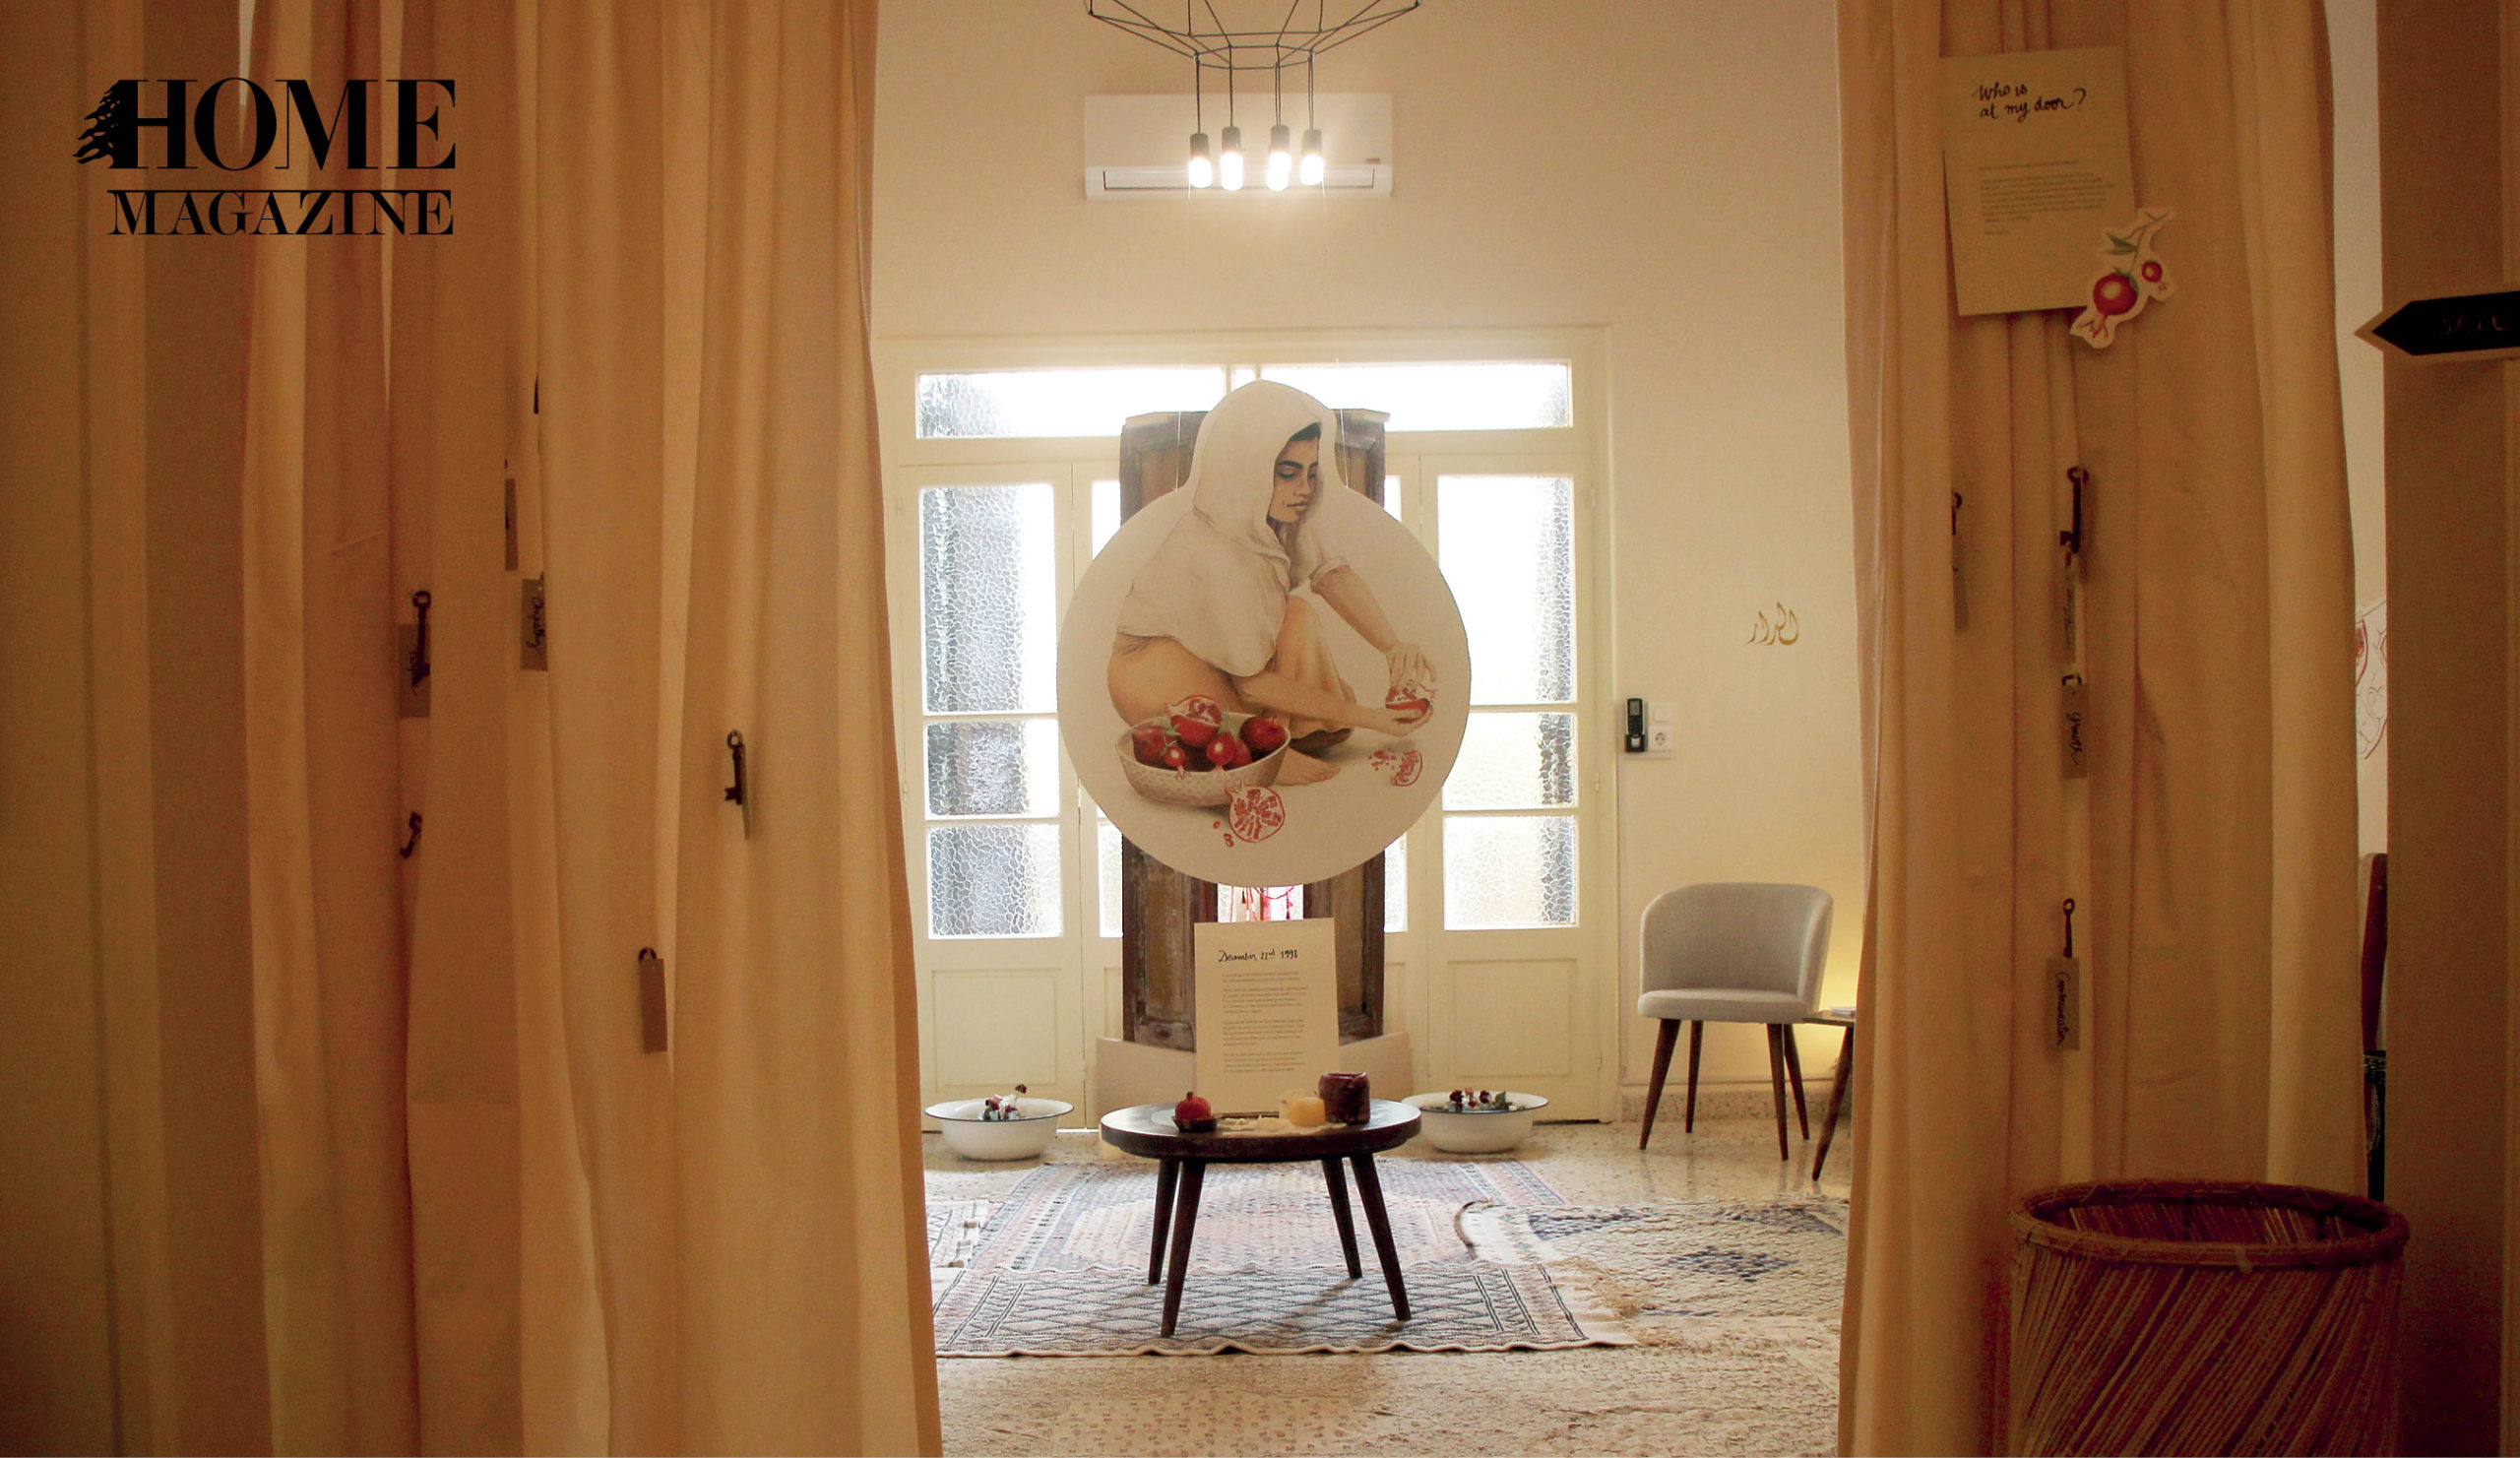 Interior space with white curtains and white glass windows with a rounded painting of a woman in the middle space